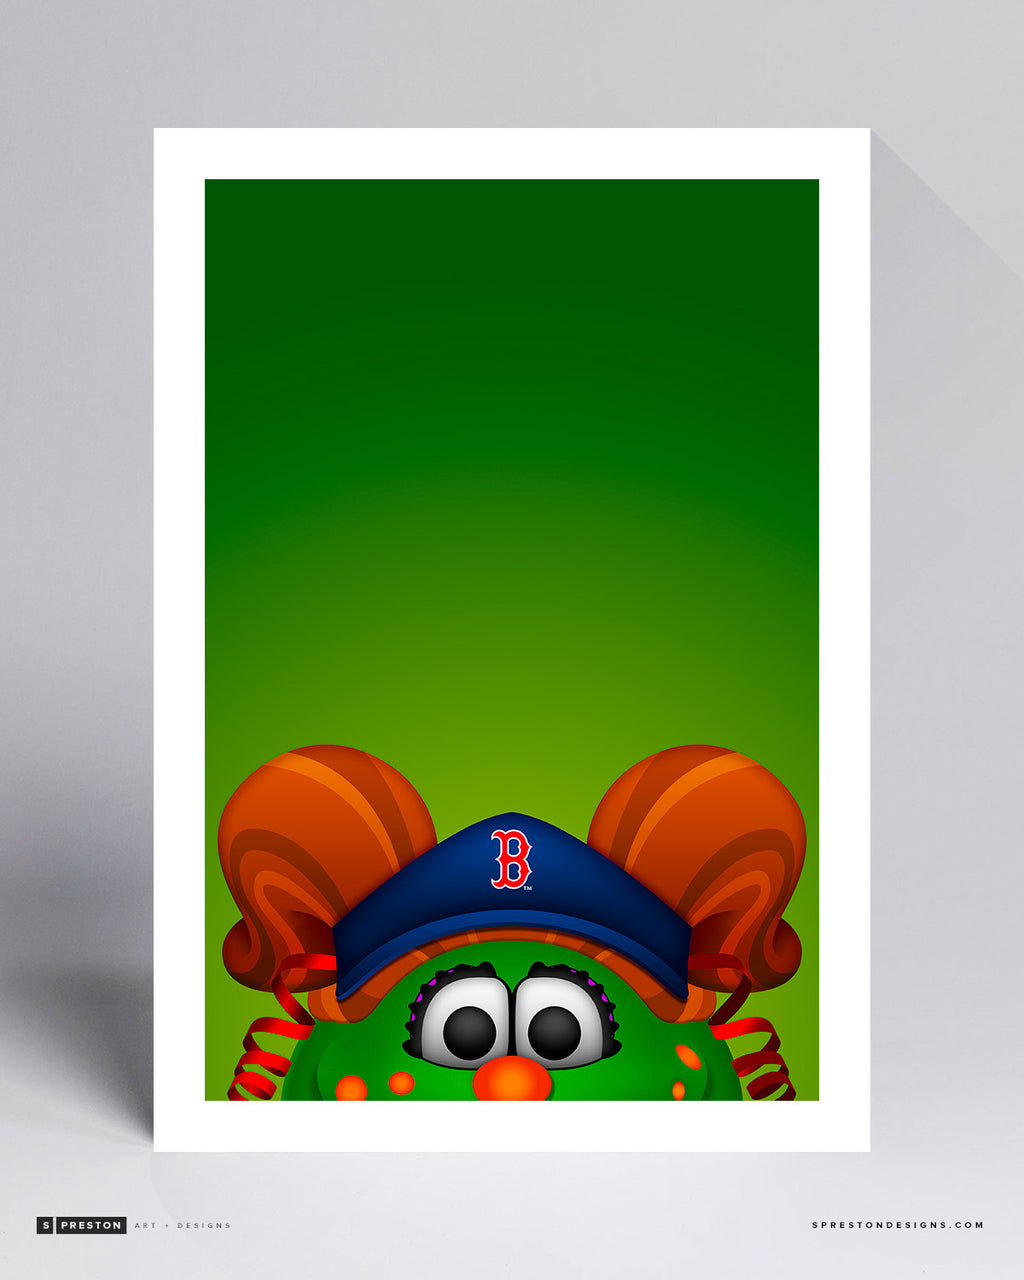 Minimalist Tessie the Green Monster Art Print - Boston Red Sox - S. Preston Art + Designs